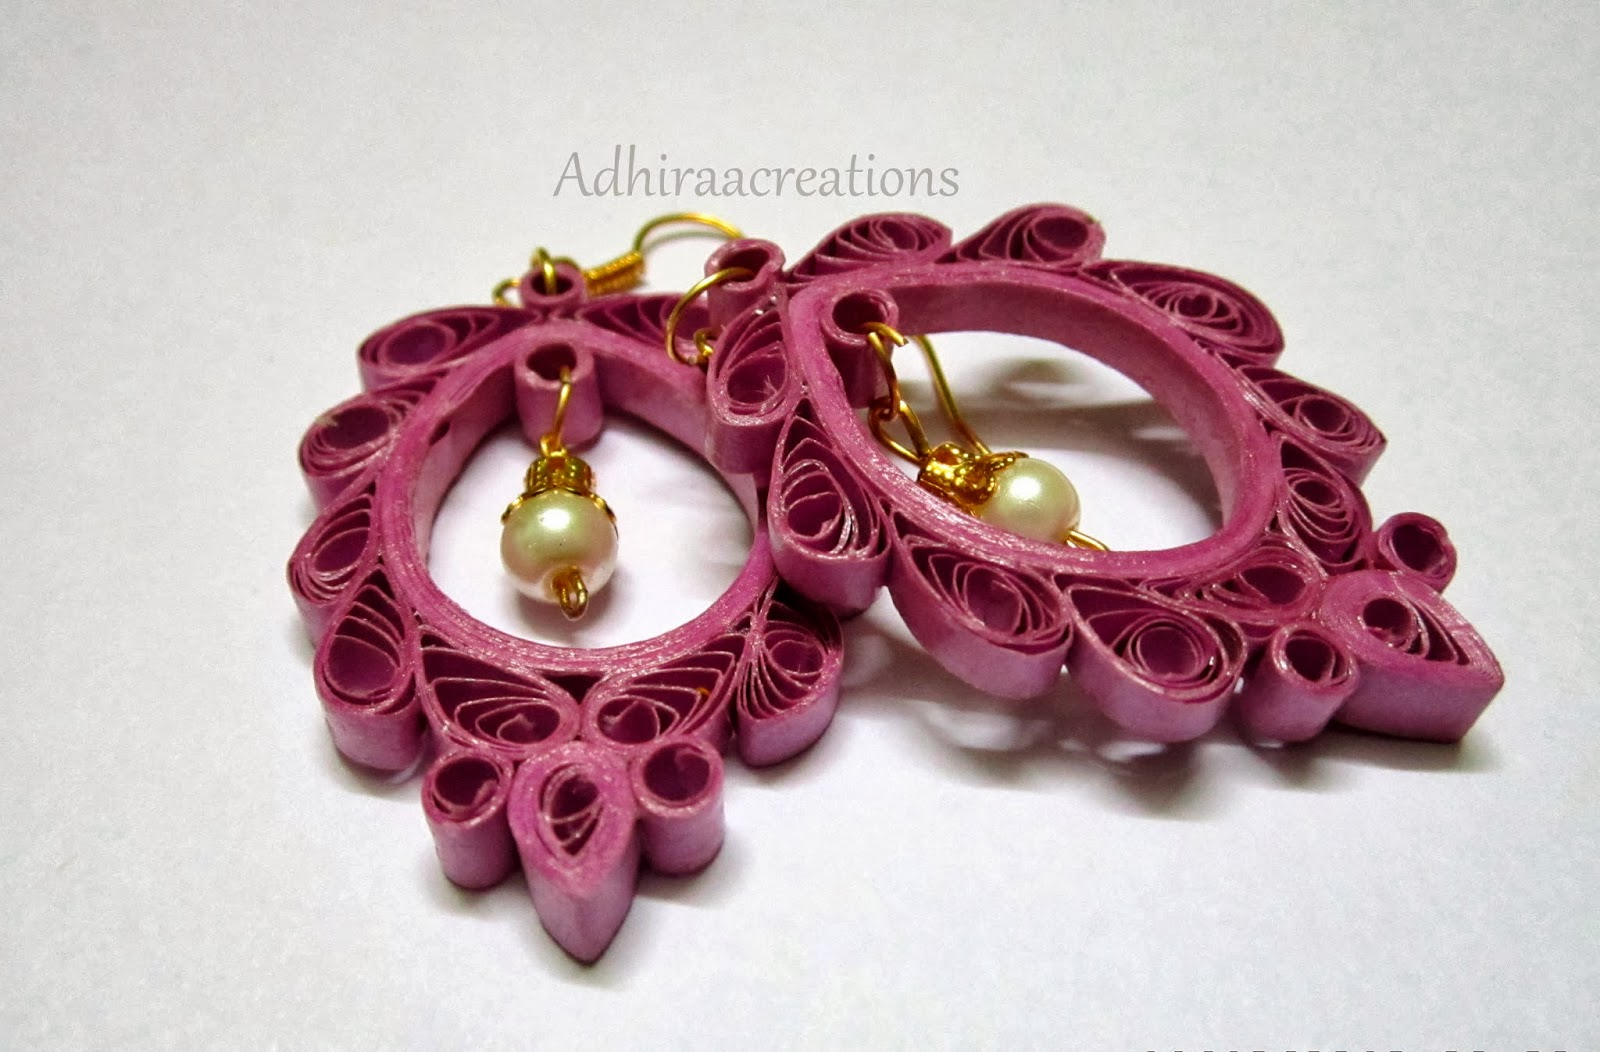 Adhiraacreations: Quilling Earring Designs